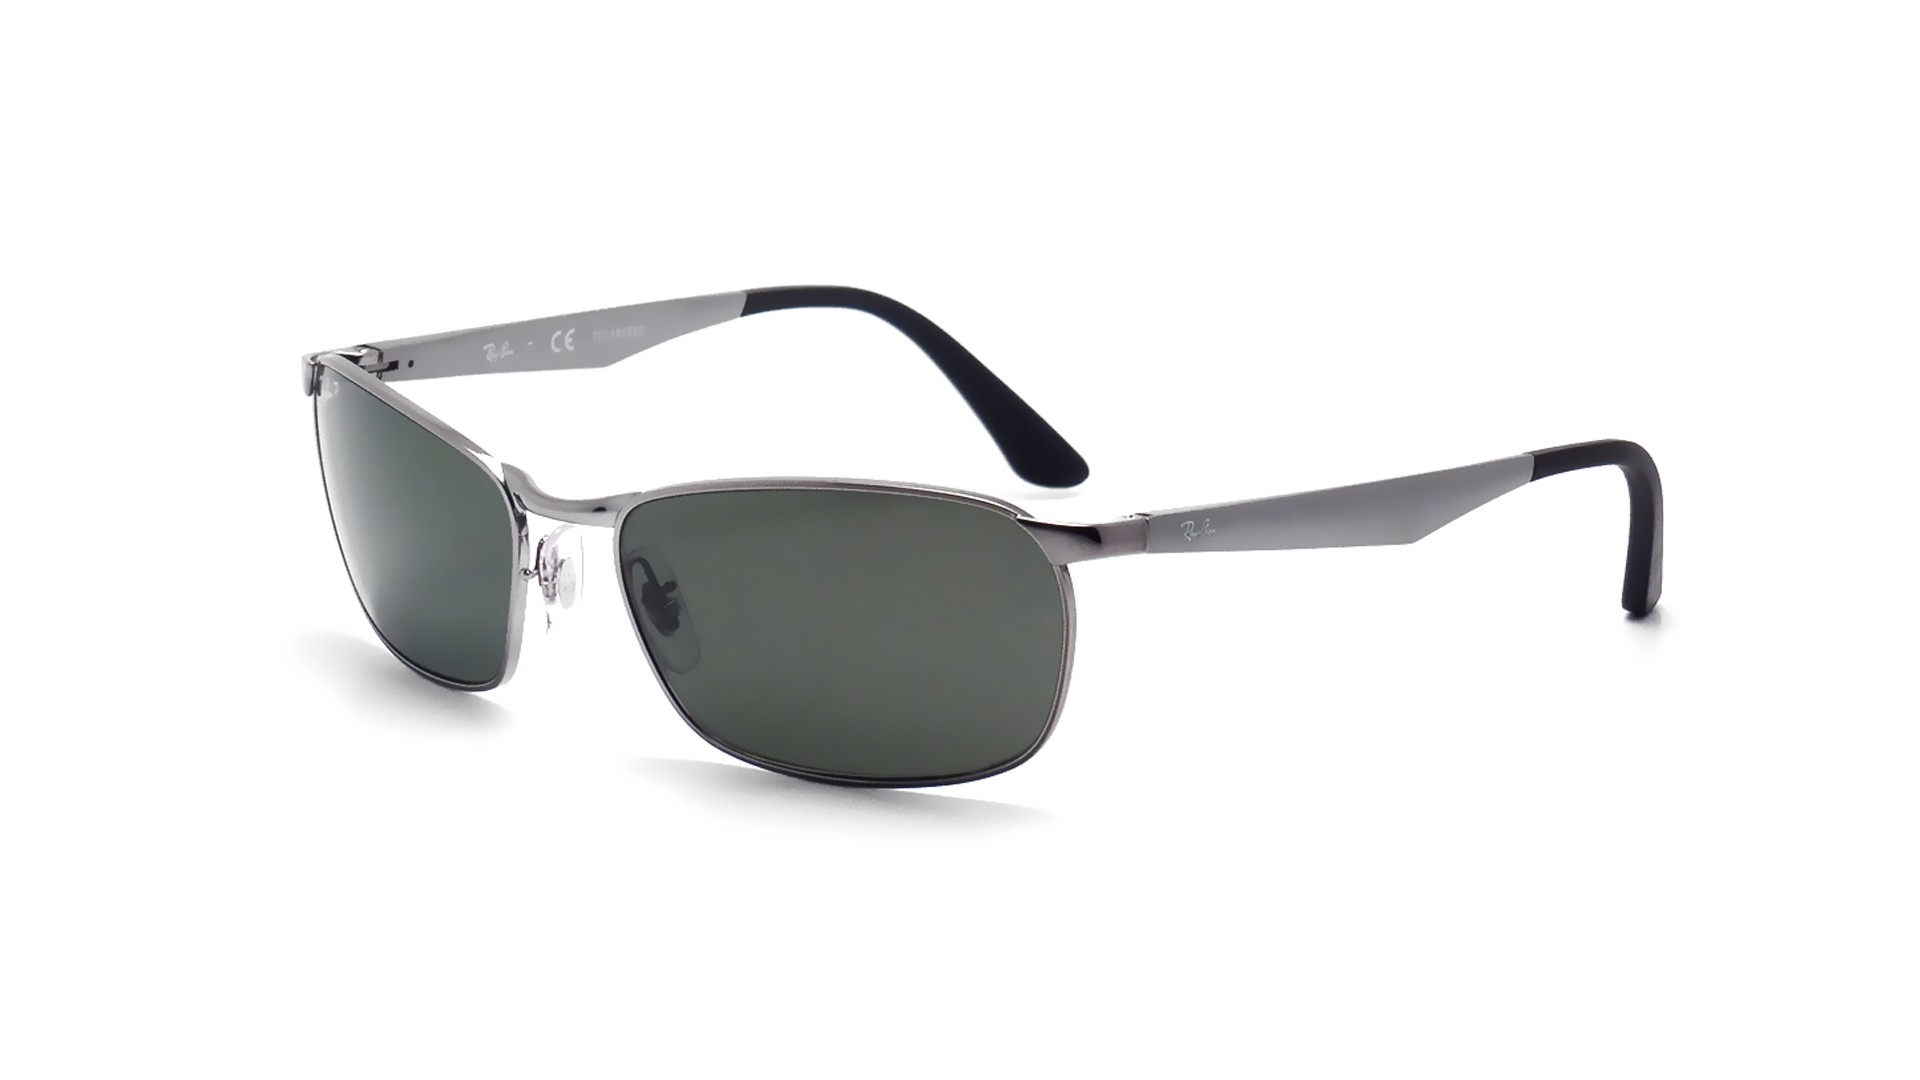 910f6431a24e7 Sunglasses Ray-Ban Active Lifestyle Grey RB3534 004 58 59-17 Large Polarized